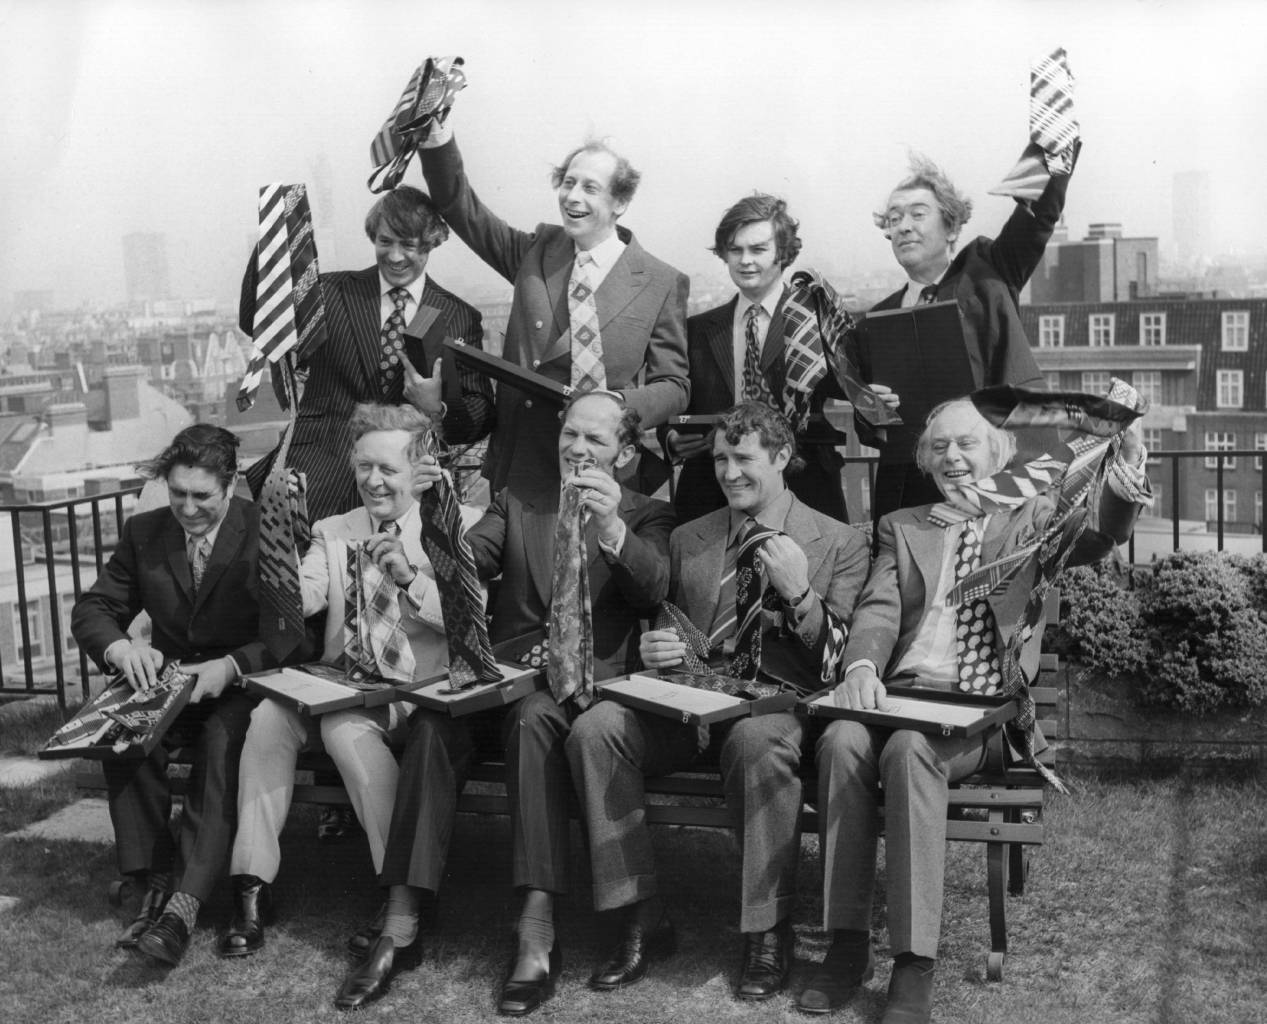 April 1974:  The Top Ten Tiemen celebrate their victory by displaying their winning ties at a presentation at the  Playboy Club, Park Lane.  Standing, left to right:  Leonard Parkin, ITN, Peter Woods, BBC TV, Norman Lamont, MP for Kingston-upon-Thames, Kingsley Amis, Author.  Seated, left to right:  Frank Chapple, General Secretary EETPU, Michael Barratt, BBC-TV, Henry Cooper, Malcolm Allison, Soccer Manager, and Patrick Cargill, Actor.  (Photo by Wesley/Keystone/Getty Images)